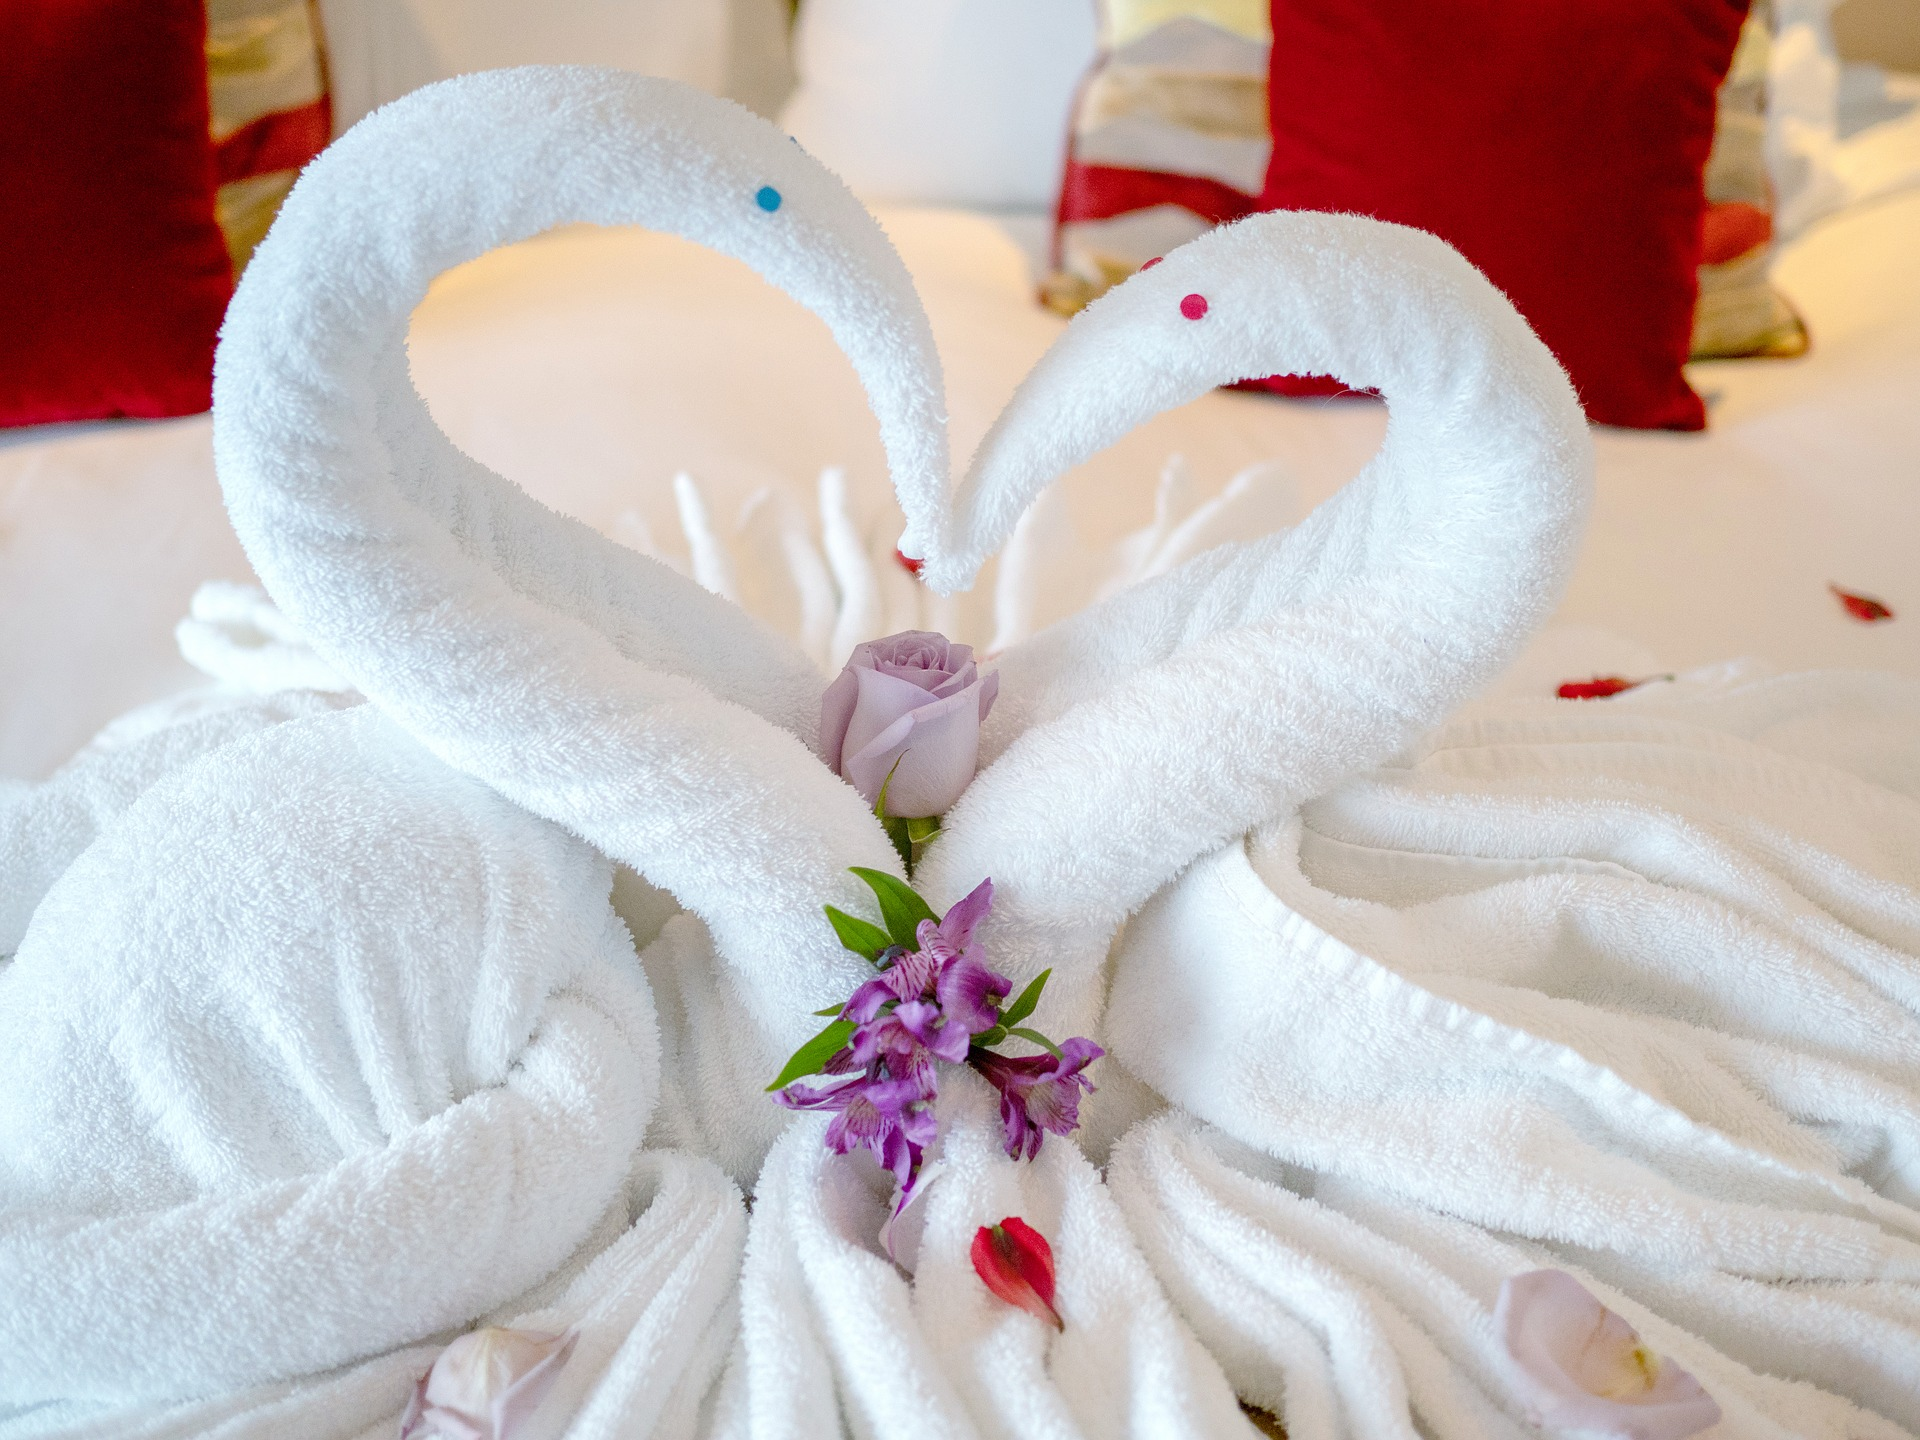 Romantic towel animal swans on a cruise ship (source: LAWJR, Pixabay)